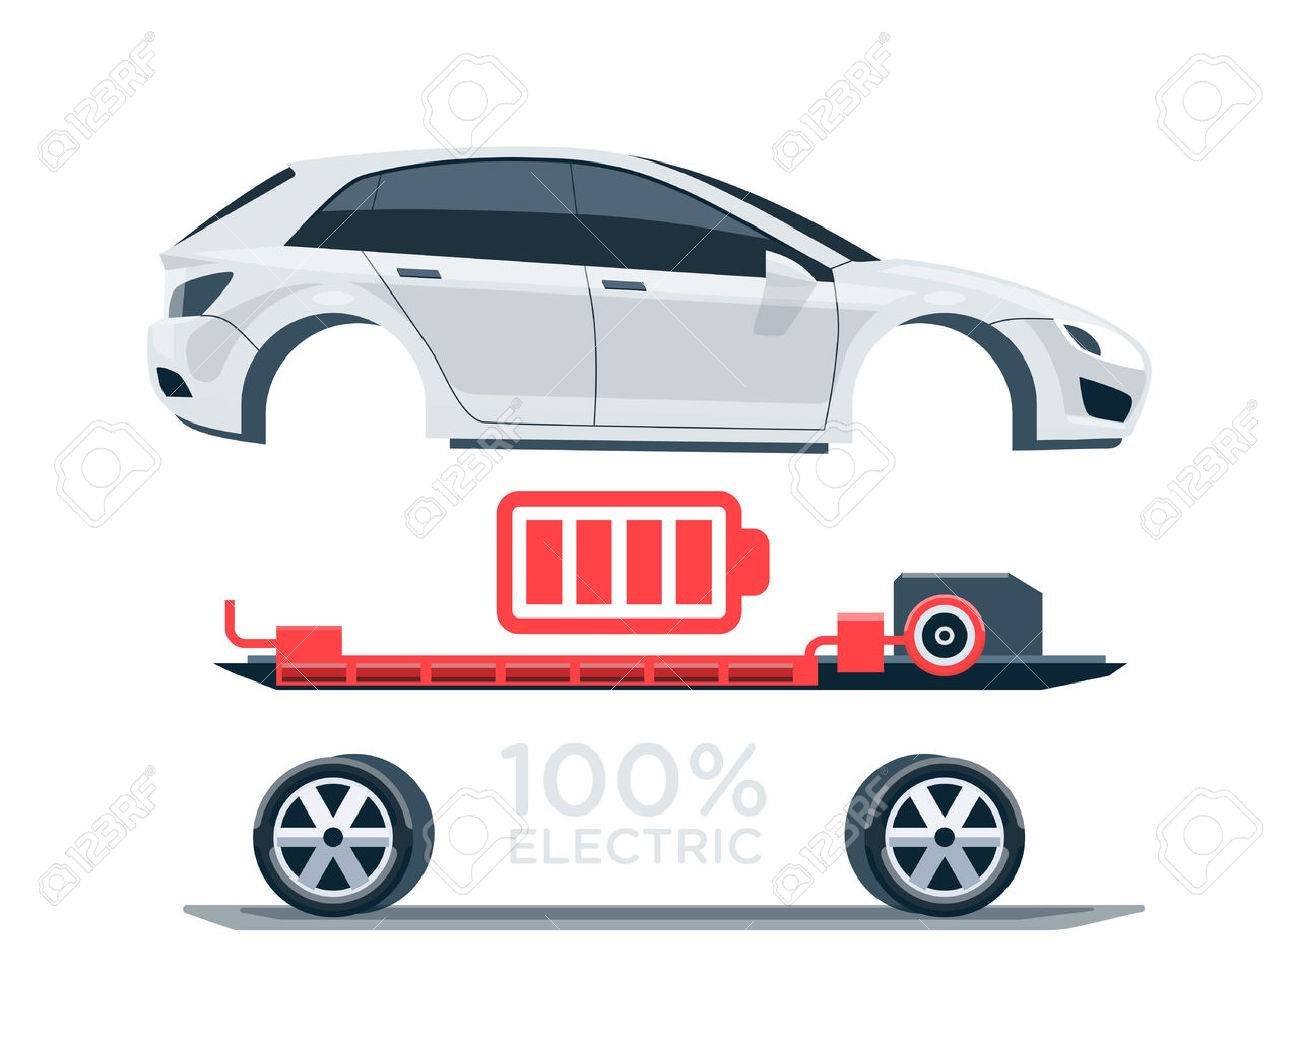 Vector illustration scheme of an electric car charging at the charger station showing electrical components like battery pack, motor, charger, controller. - 74734479